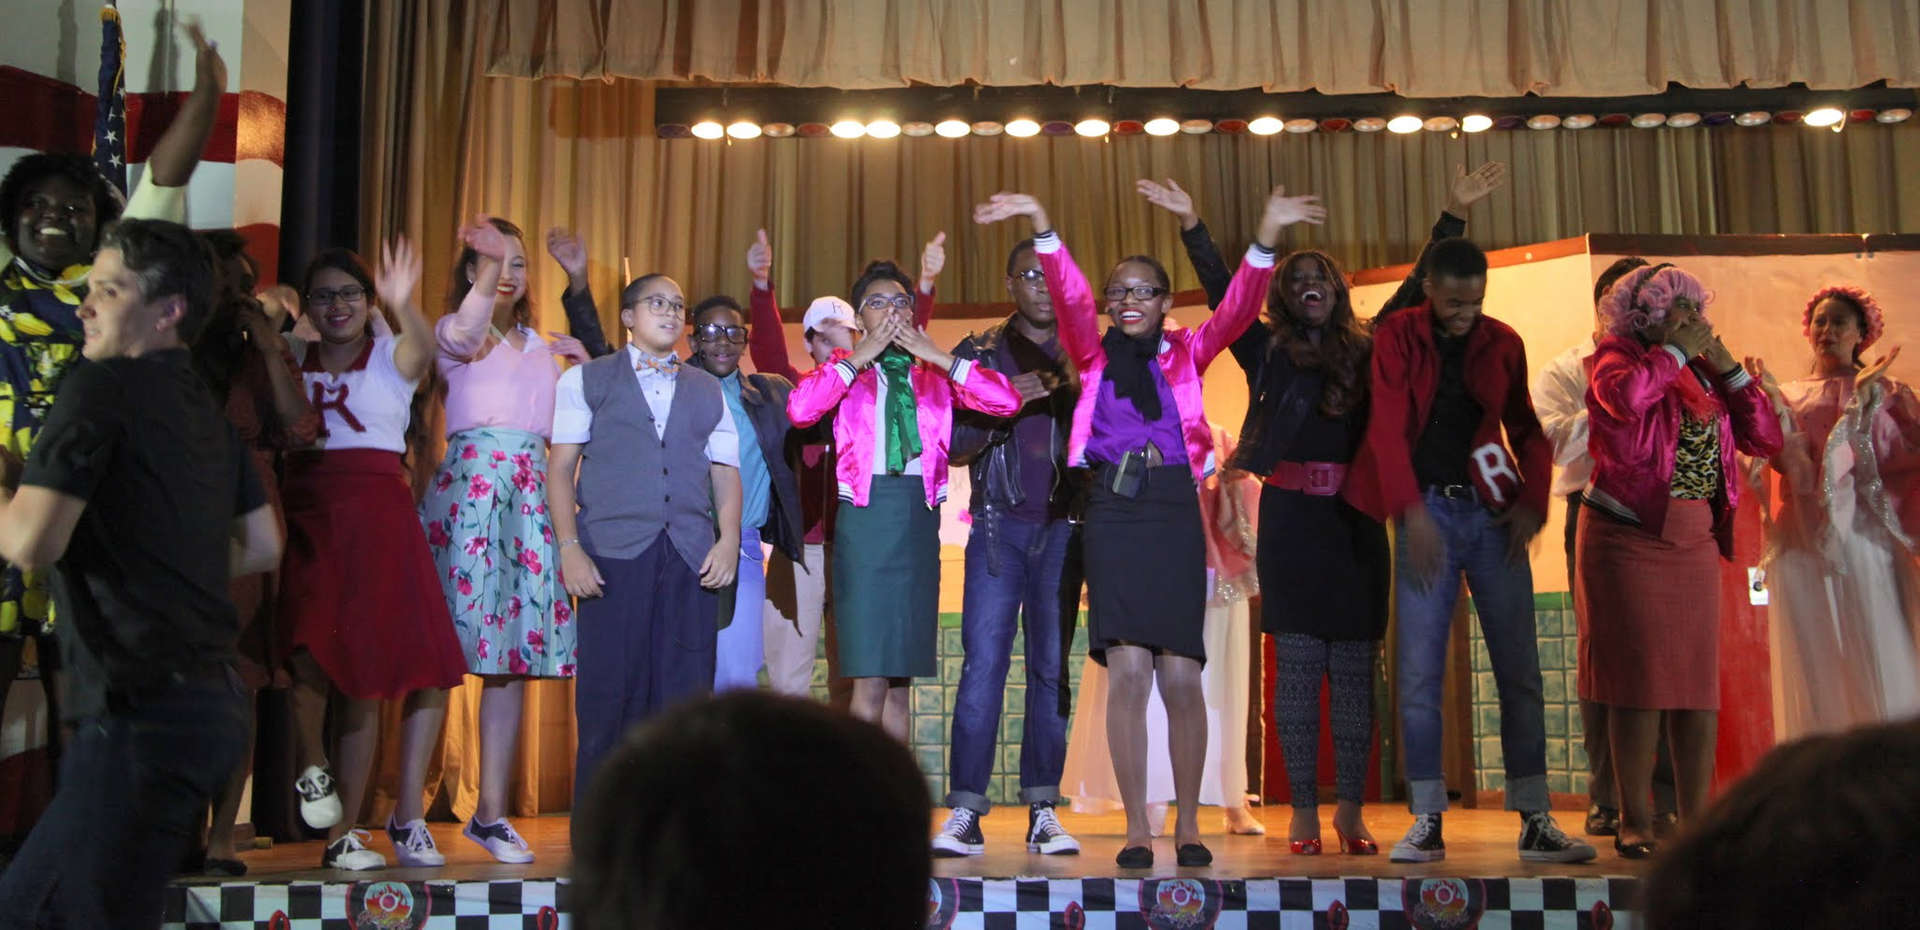 Students on stage with one another